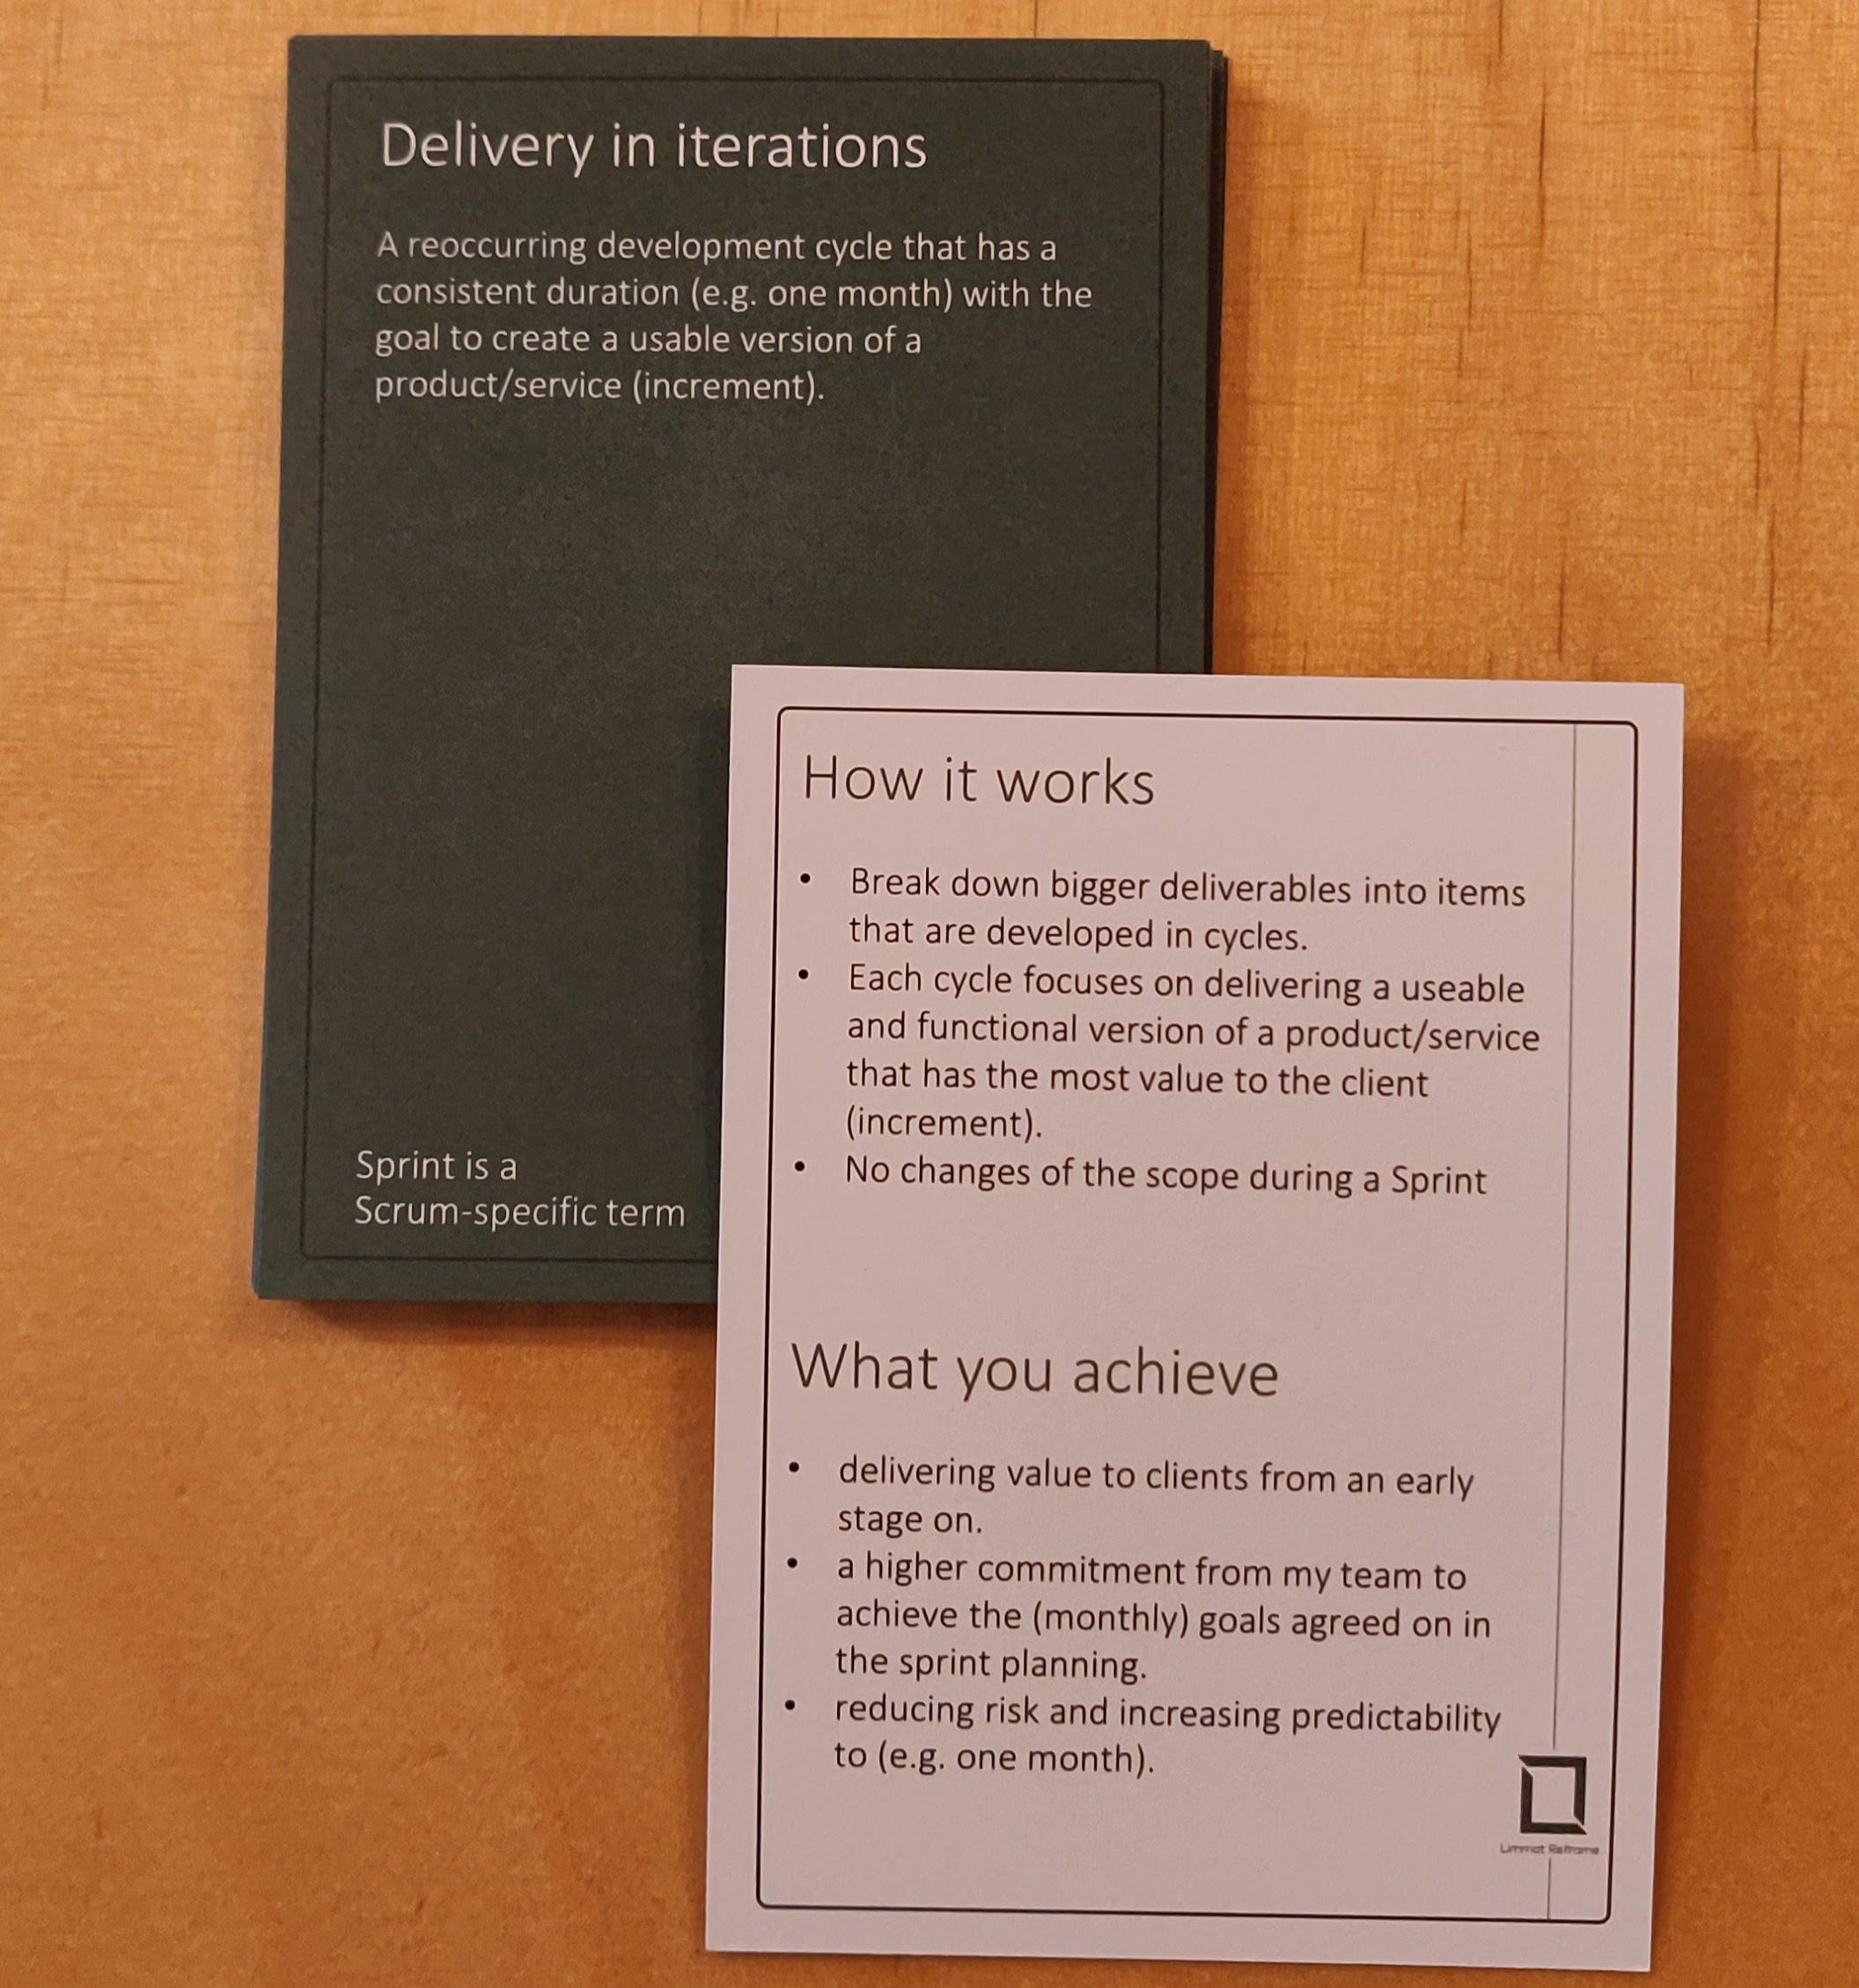 Agile Booster Deck LimmatReframe showing the delivery in iterations Sprint-based delivery